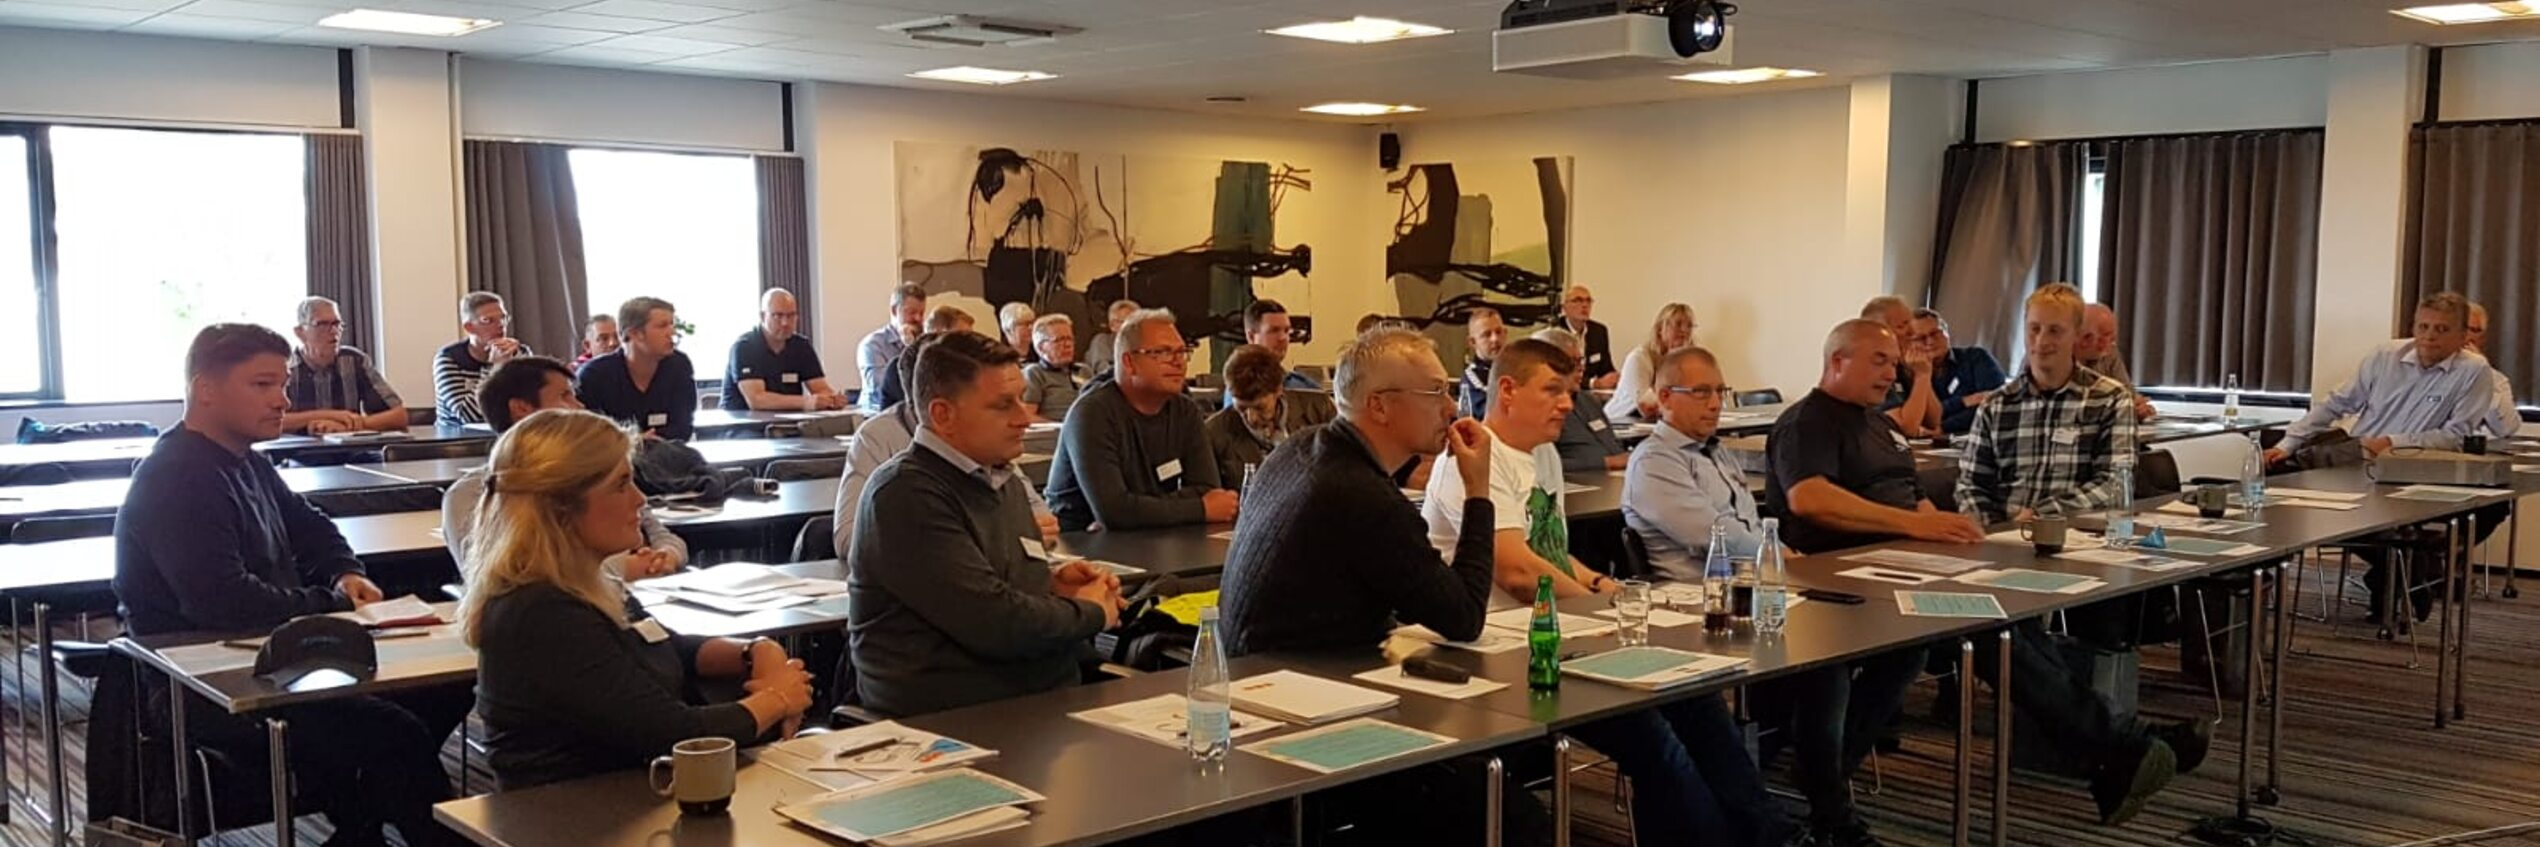 Diehl Metering Denmark Customer Day 2019